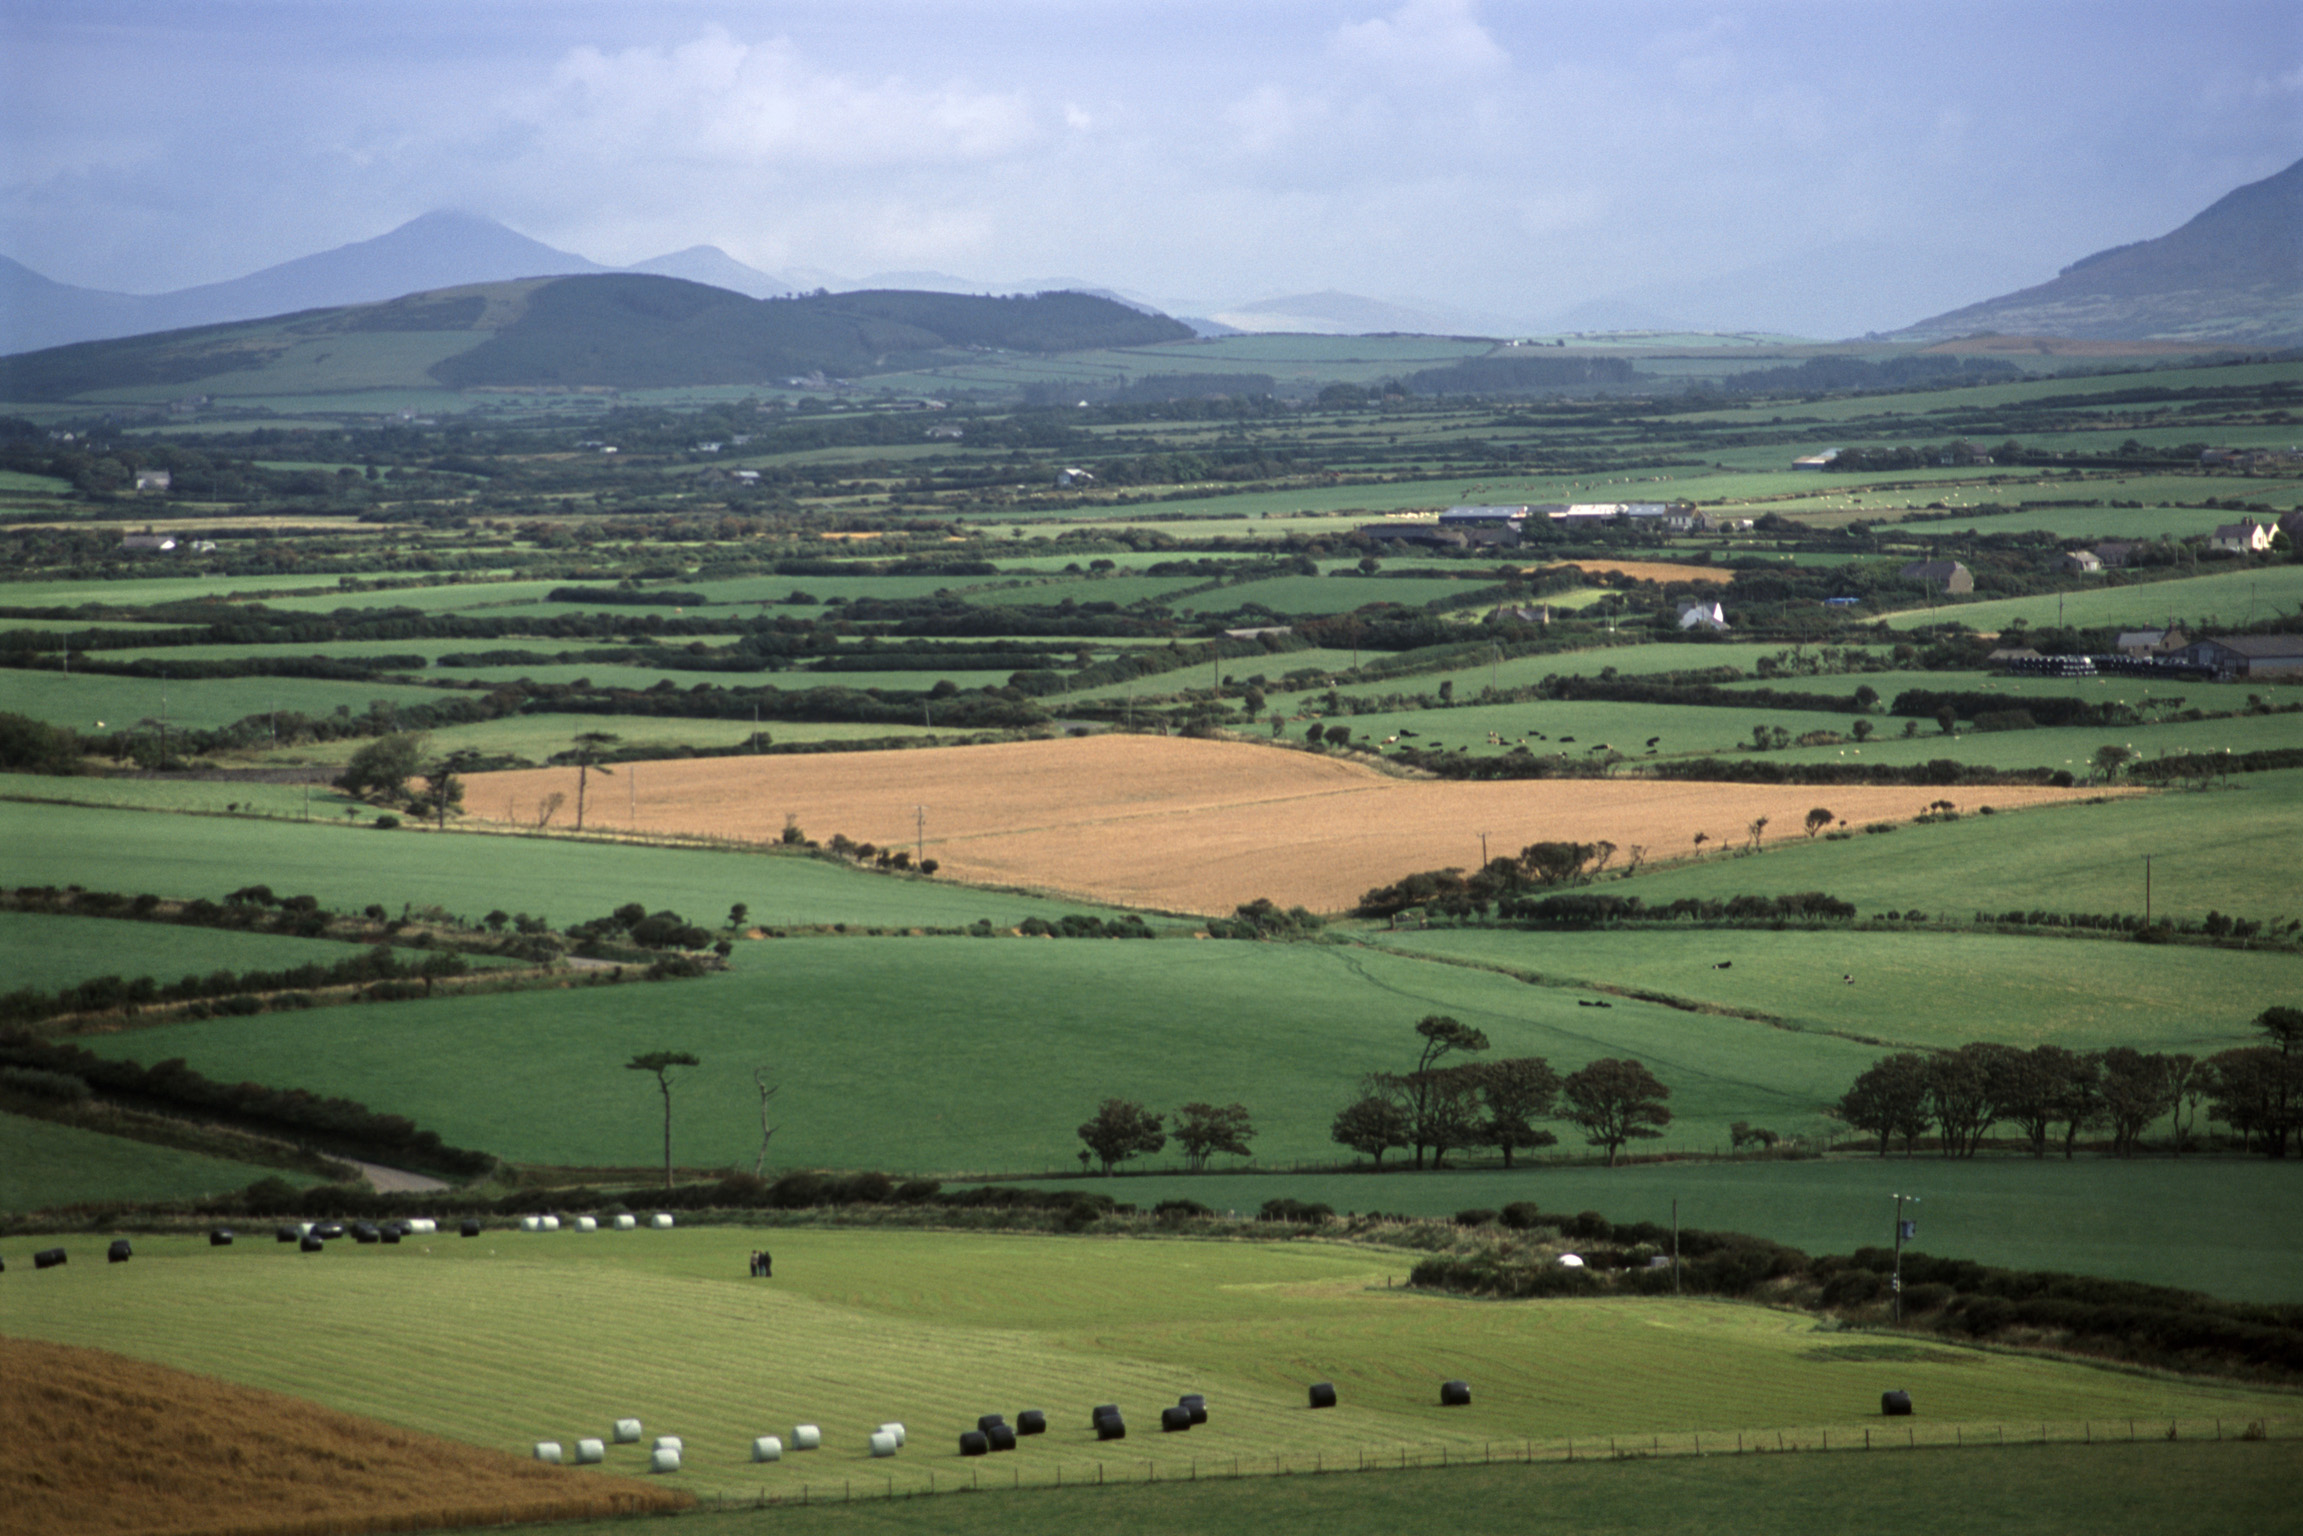 Patchwork of lush green Welsh fields and pastures with grazing livestock on the Llyn Peninsula bordering the Irish Sea